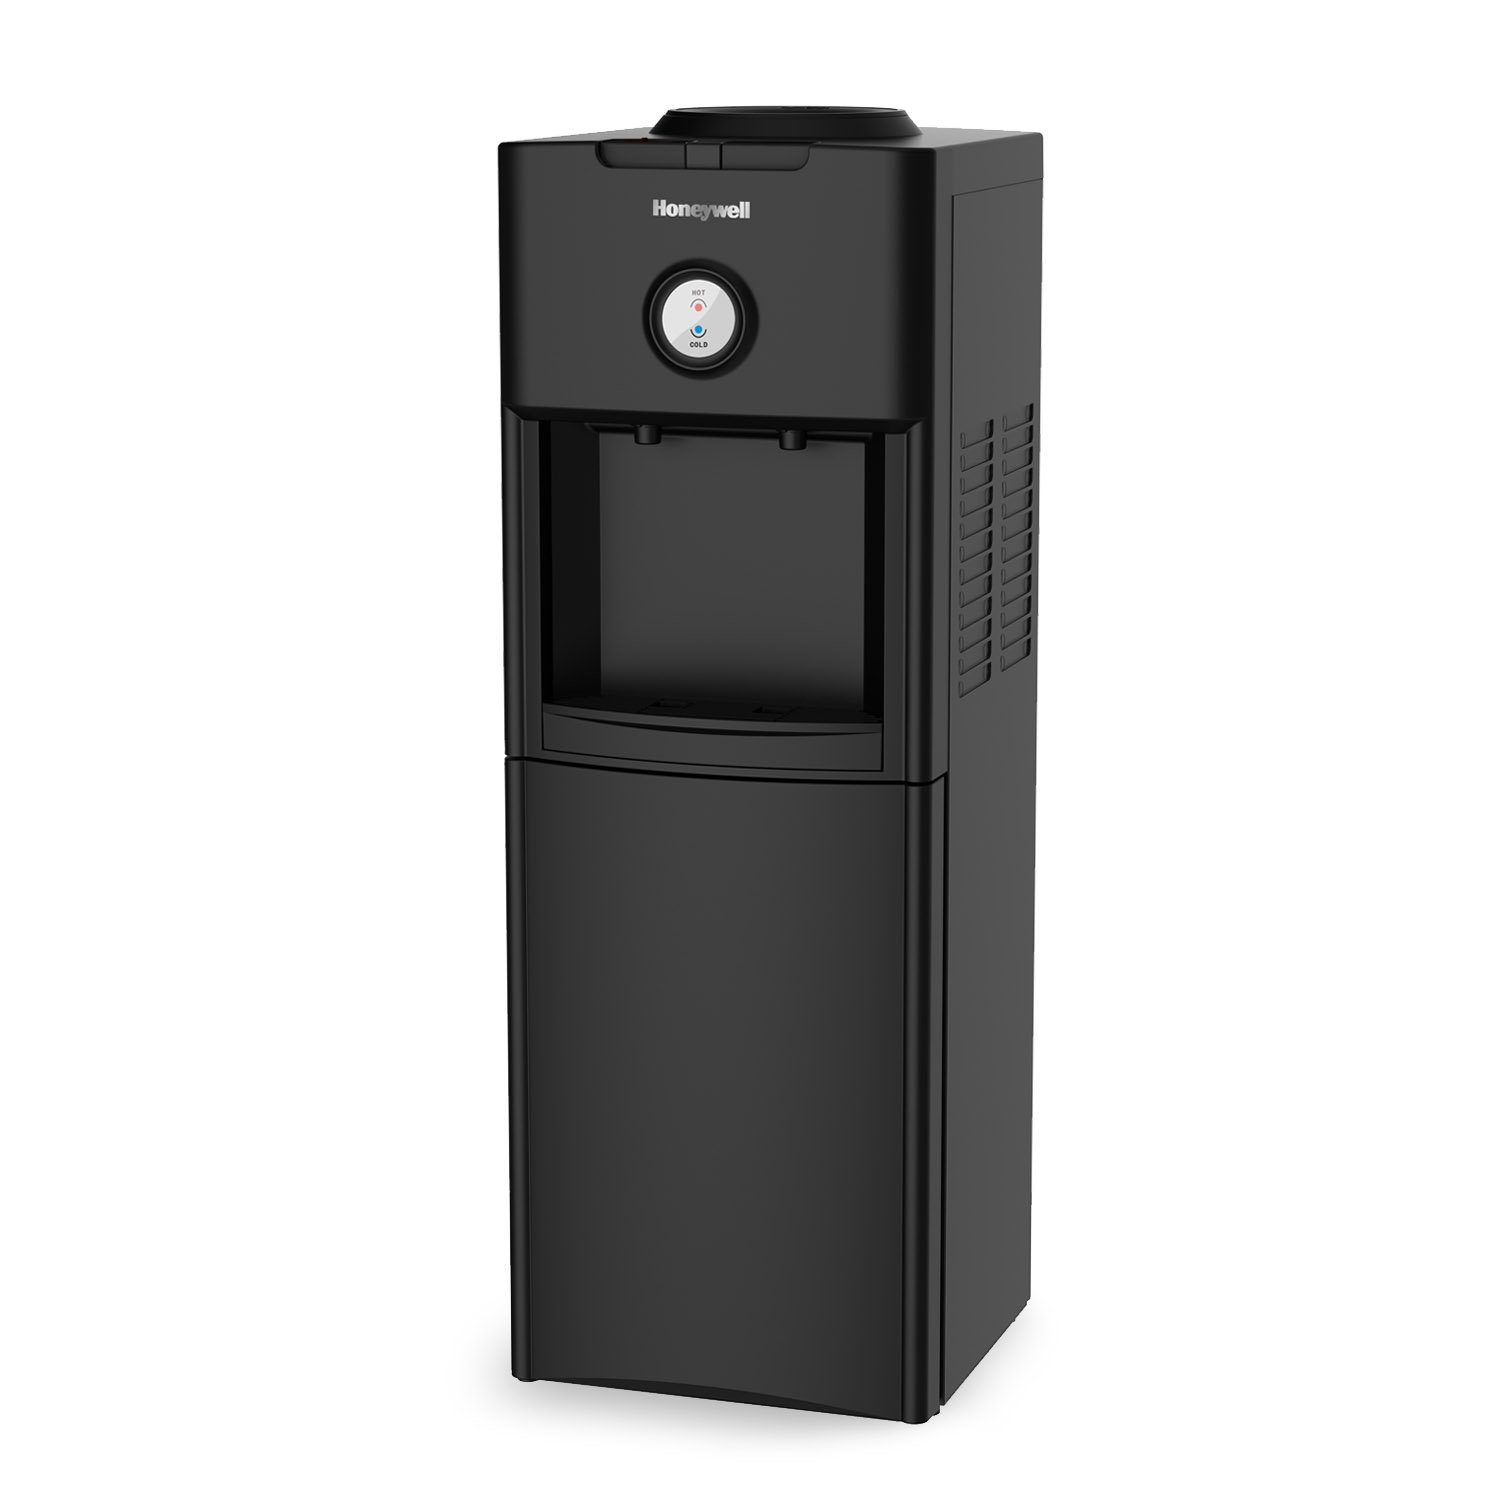 Honeywell HWB1062B 34-Inch Freestanding Hot and Cold Water Dispenser with Stainless Steel Tank to help improve water taste, Back Handle for EASIER HANDLING and Thermostat Control, Black